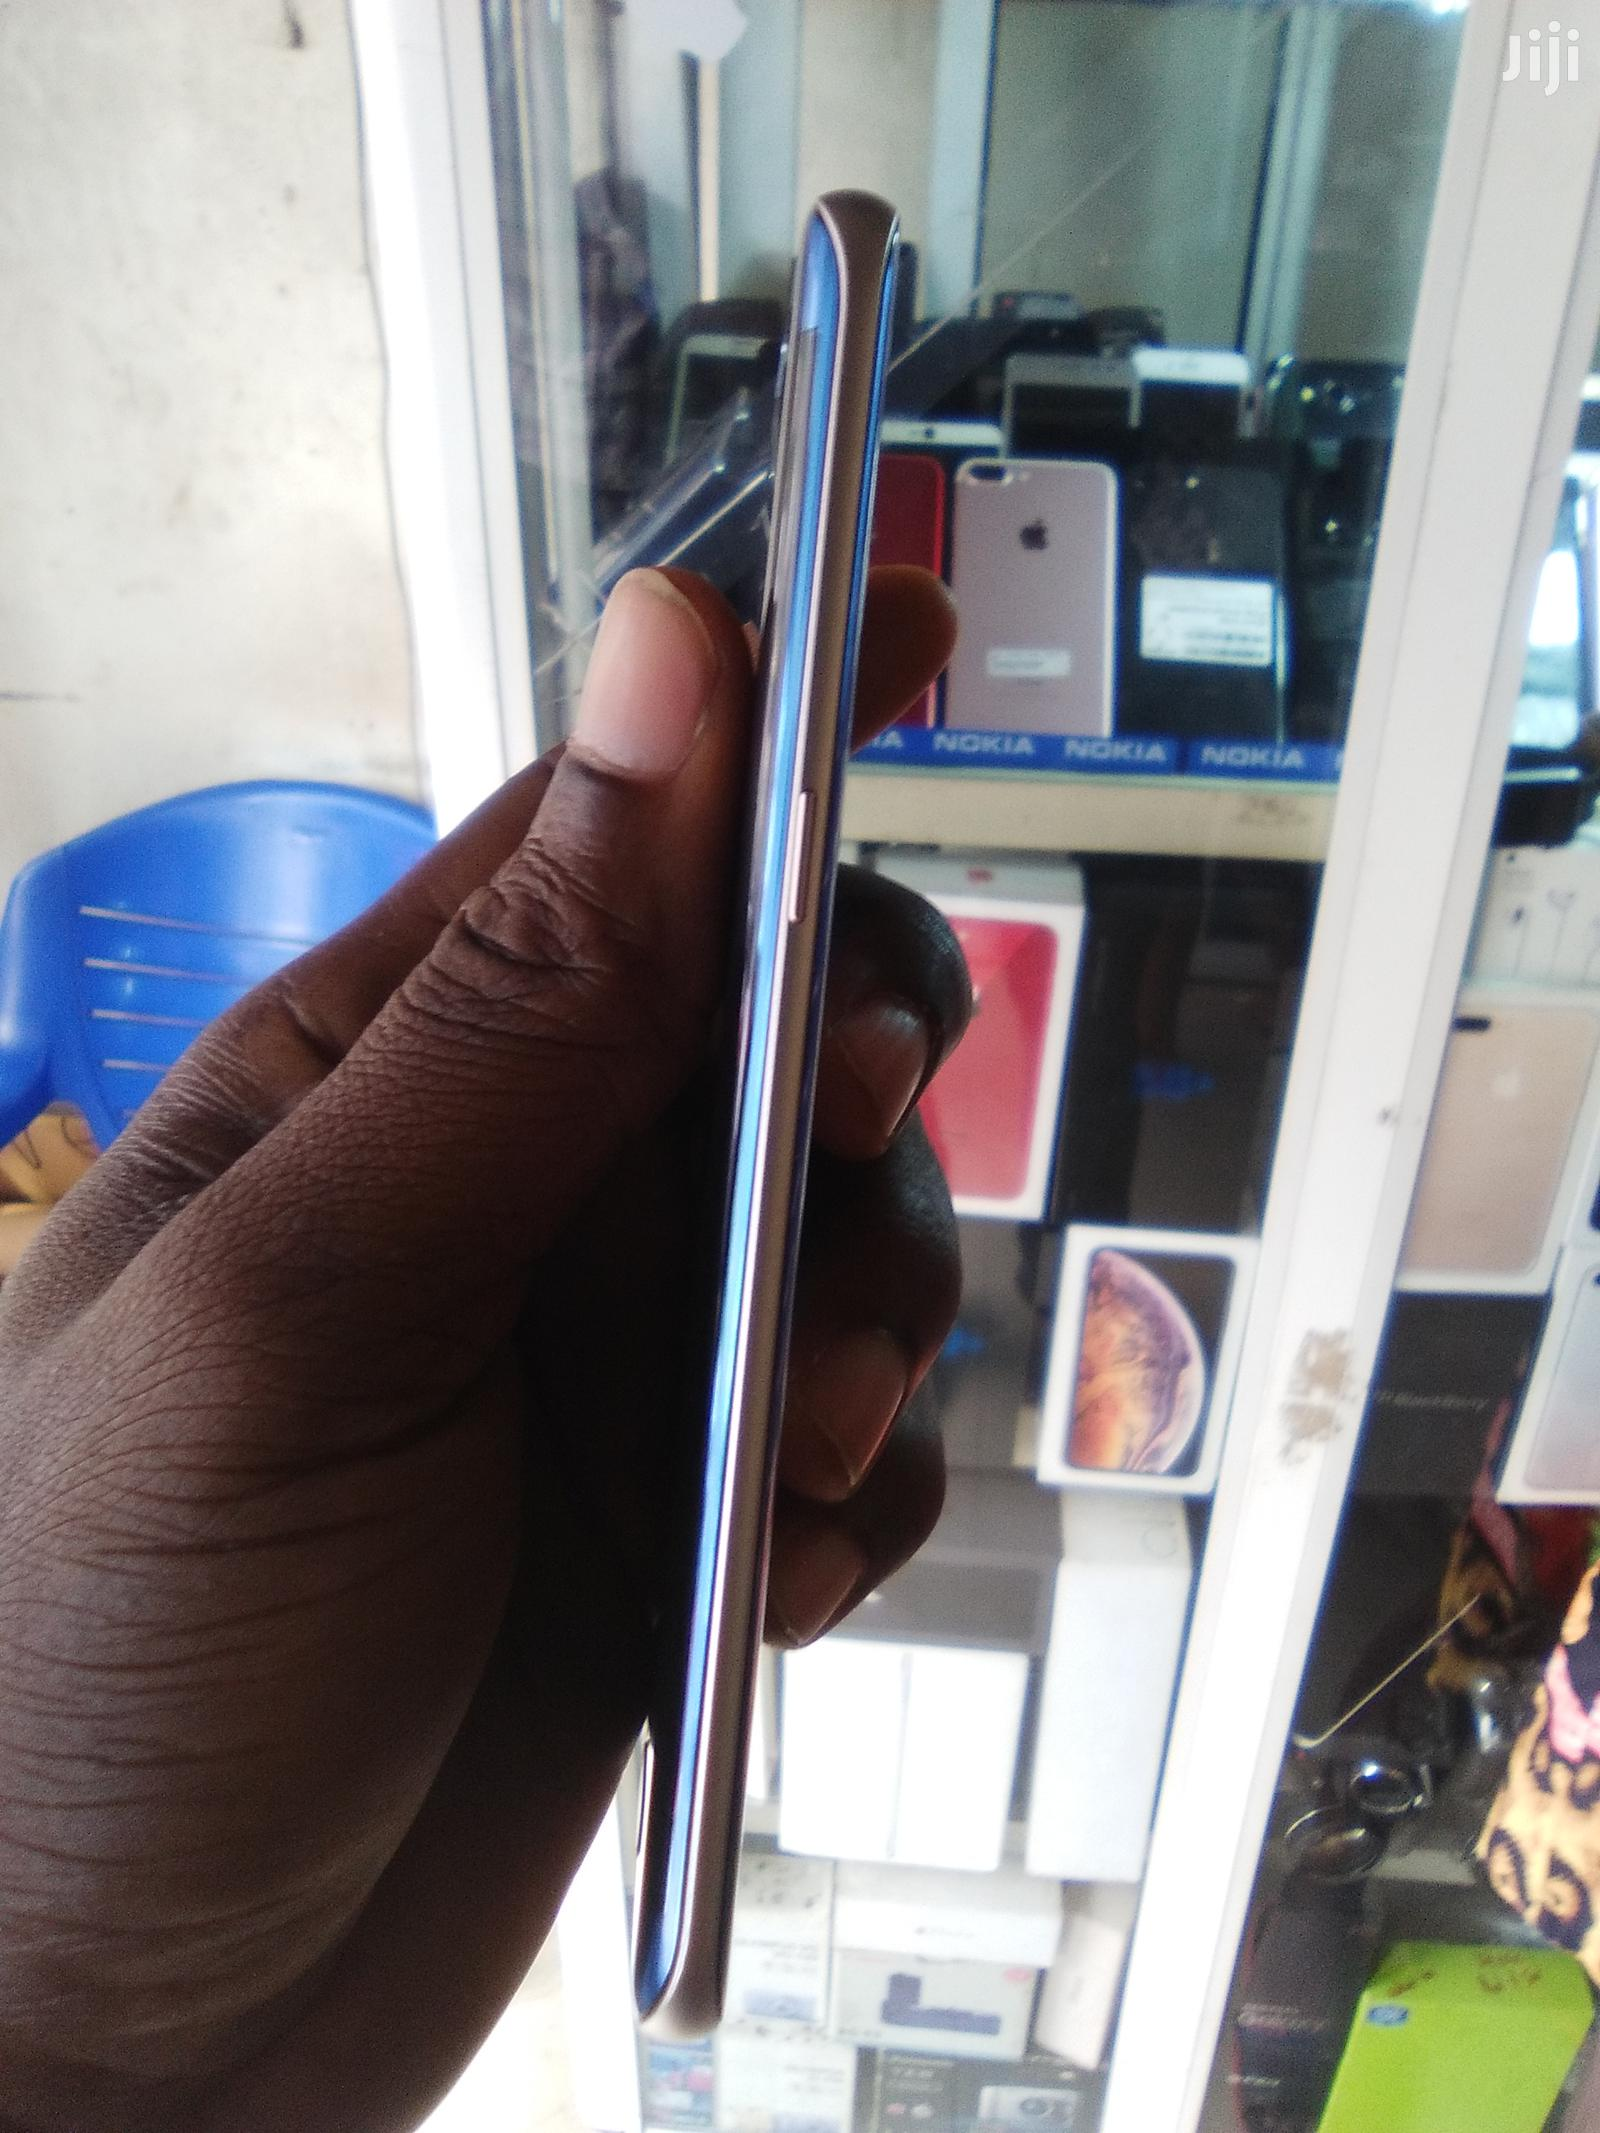 Samsung Galaxy S7 edge 32 GB | Mobile Phones for sale in Ikeja, Lagos State, Nigeria